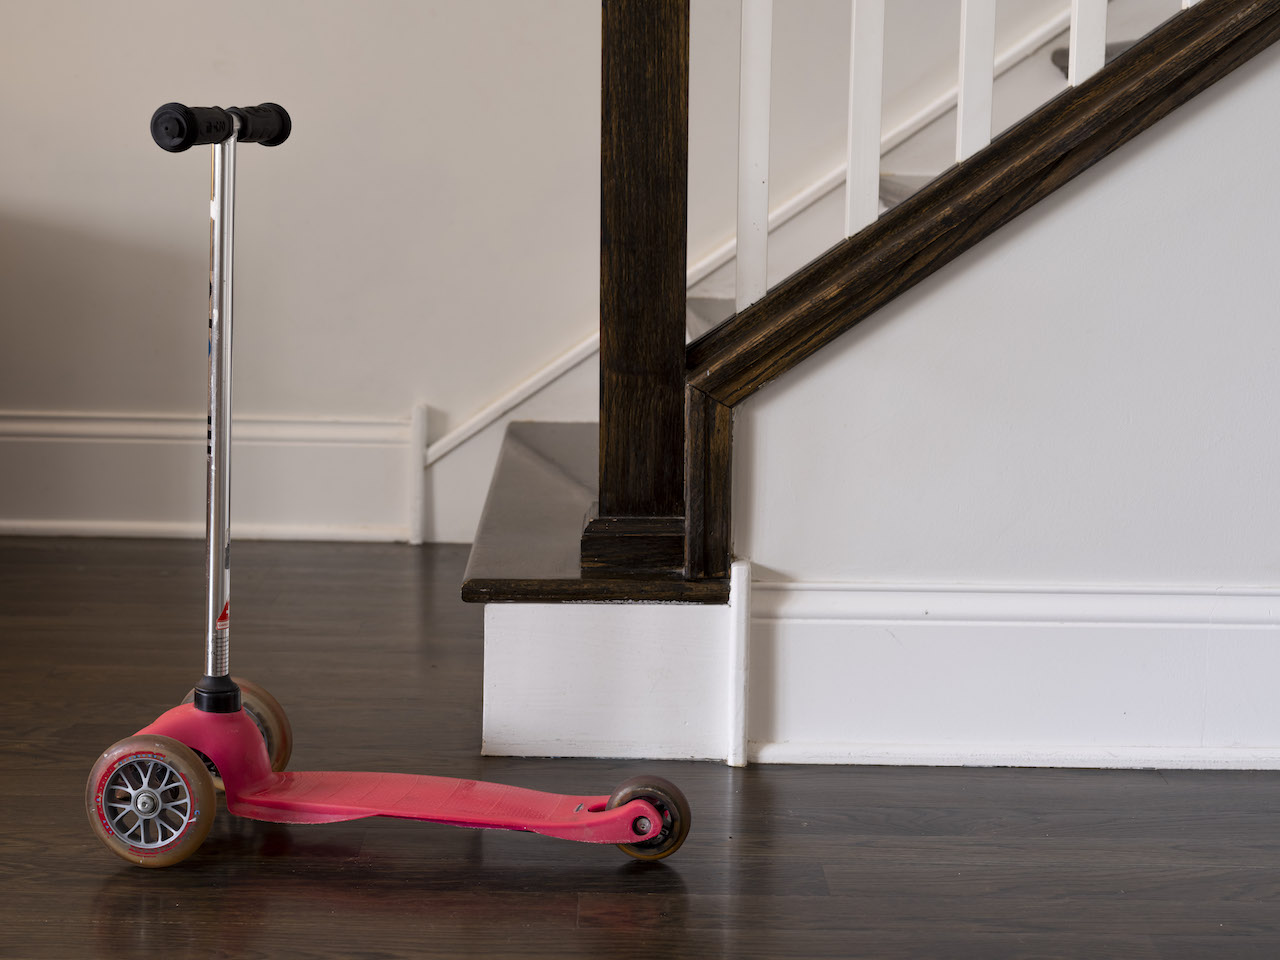 a small childrens scooter in front of a staircase in a living room